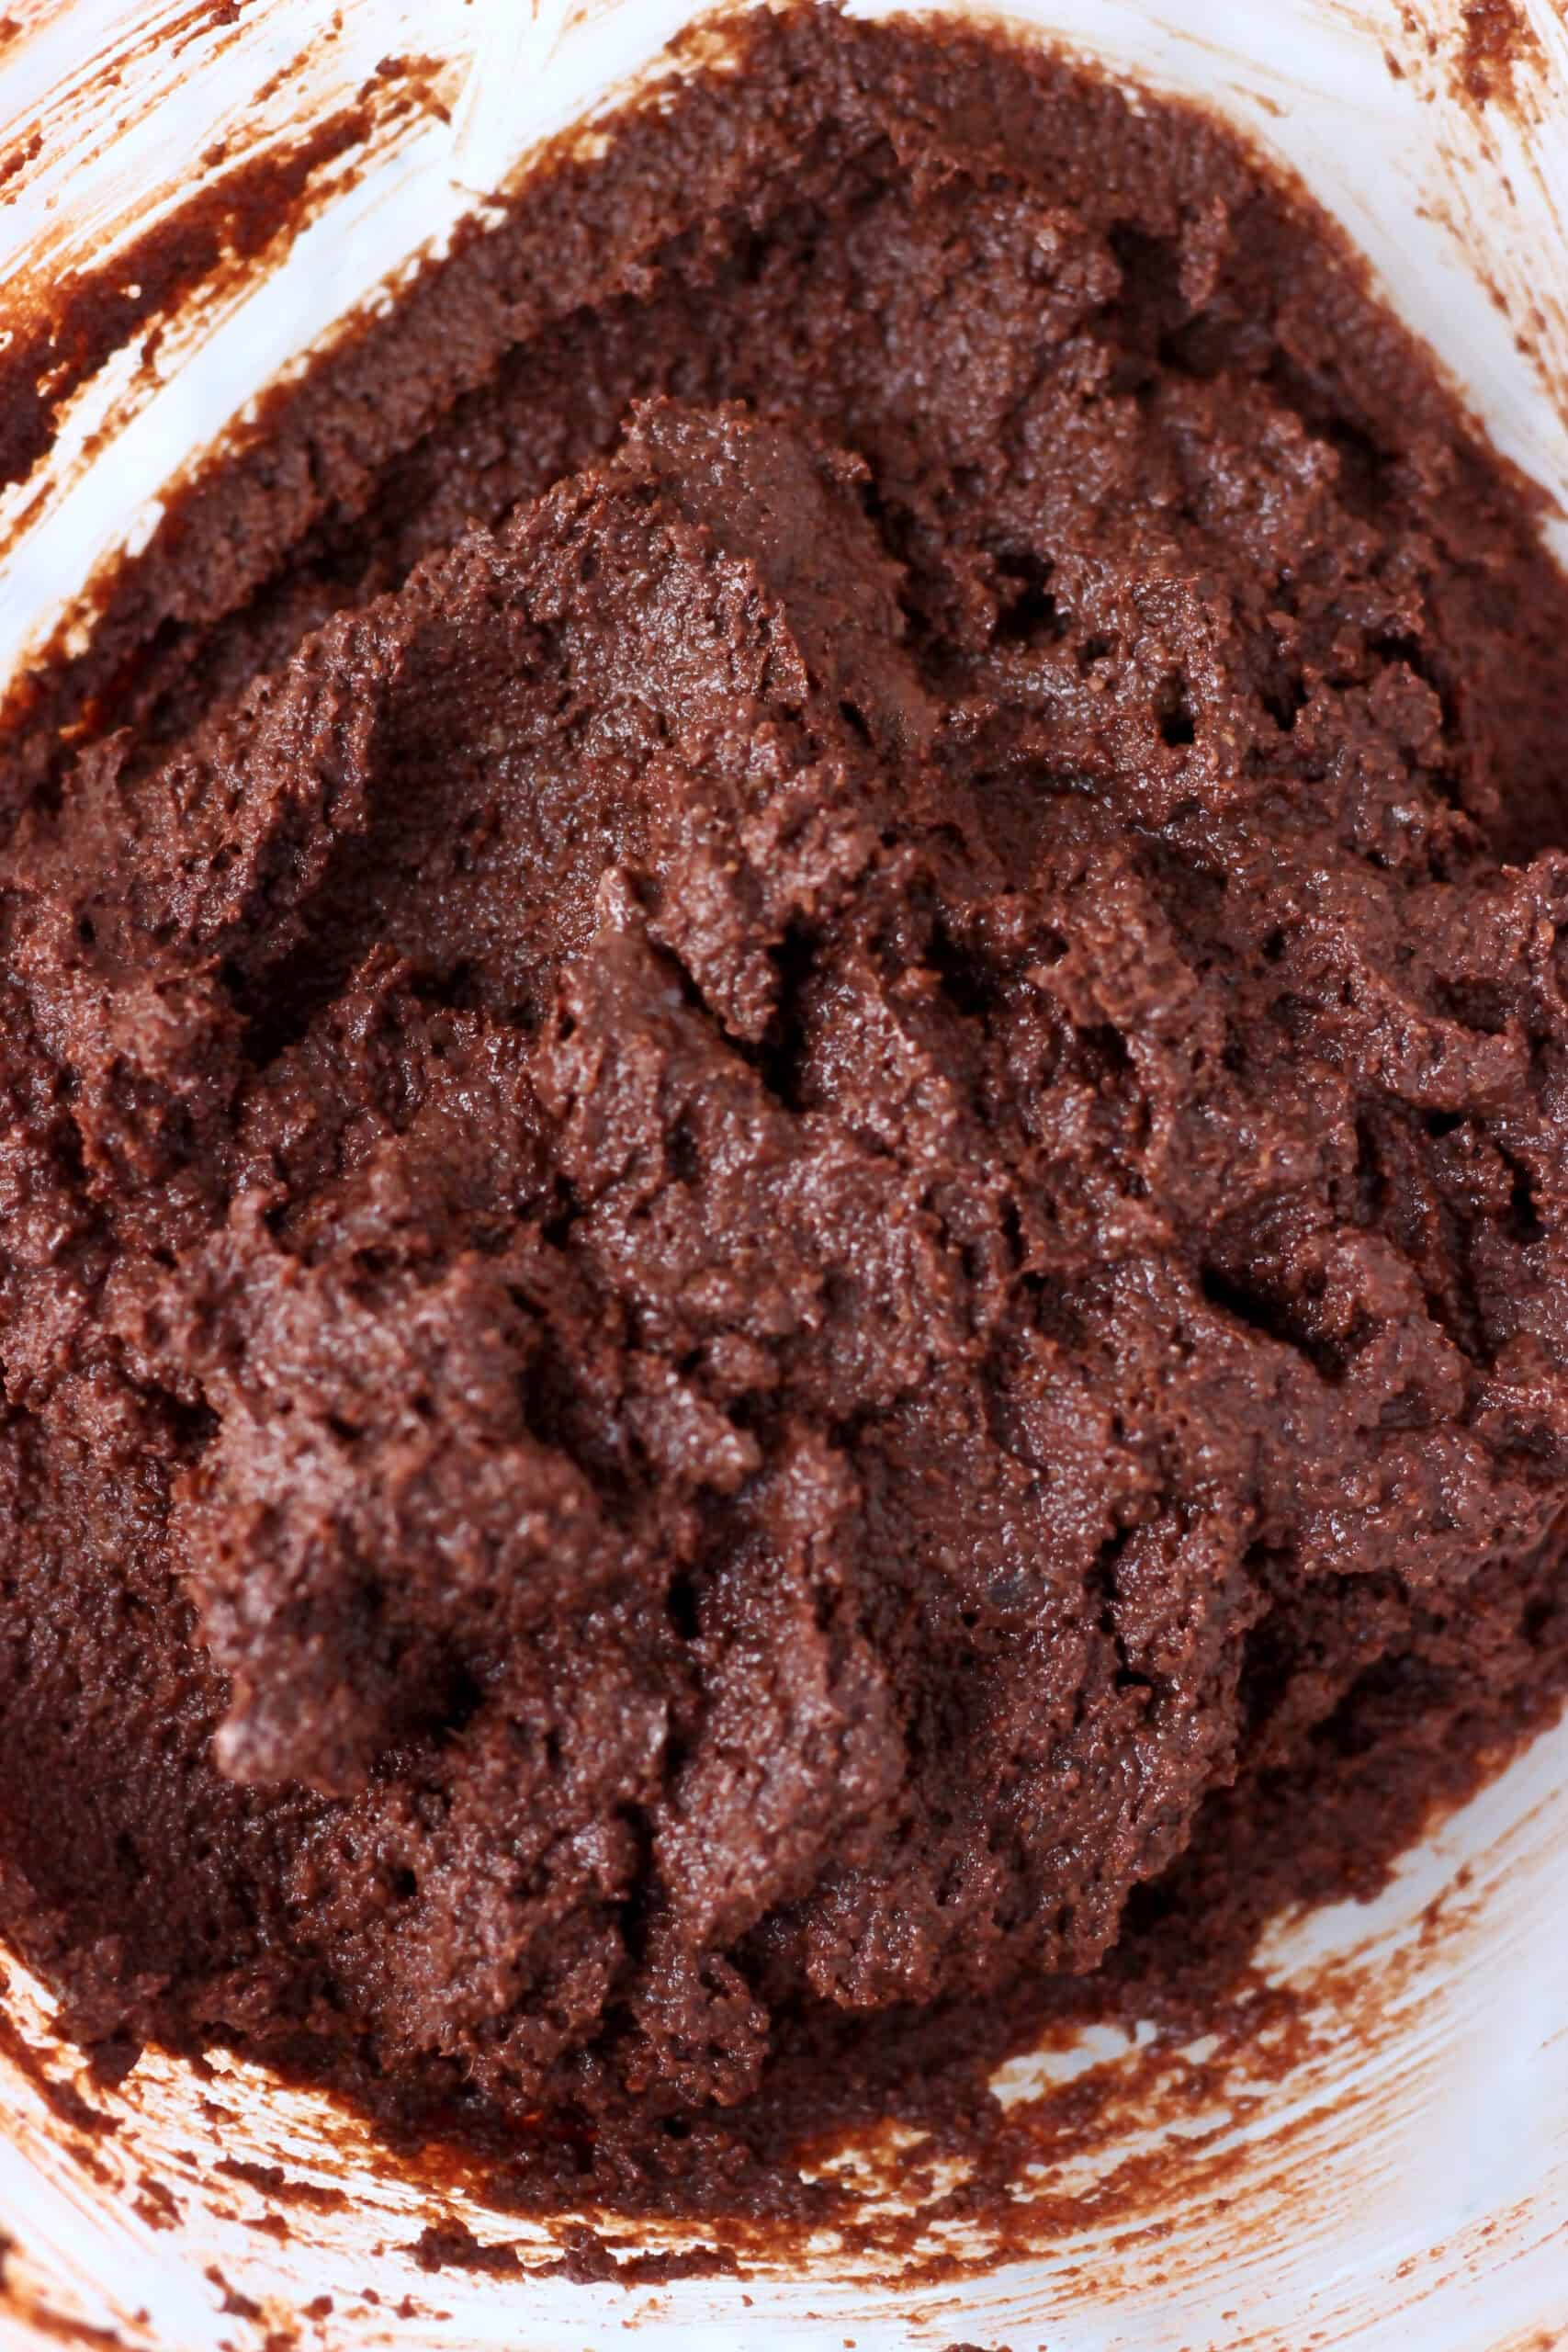 Raw vegan gluten-free chocolate brownie batter in a bowl